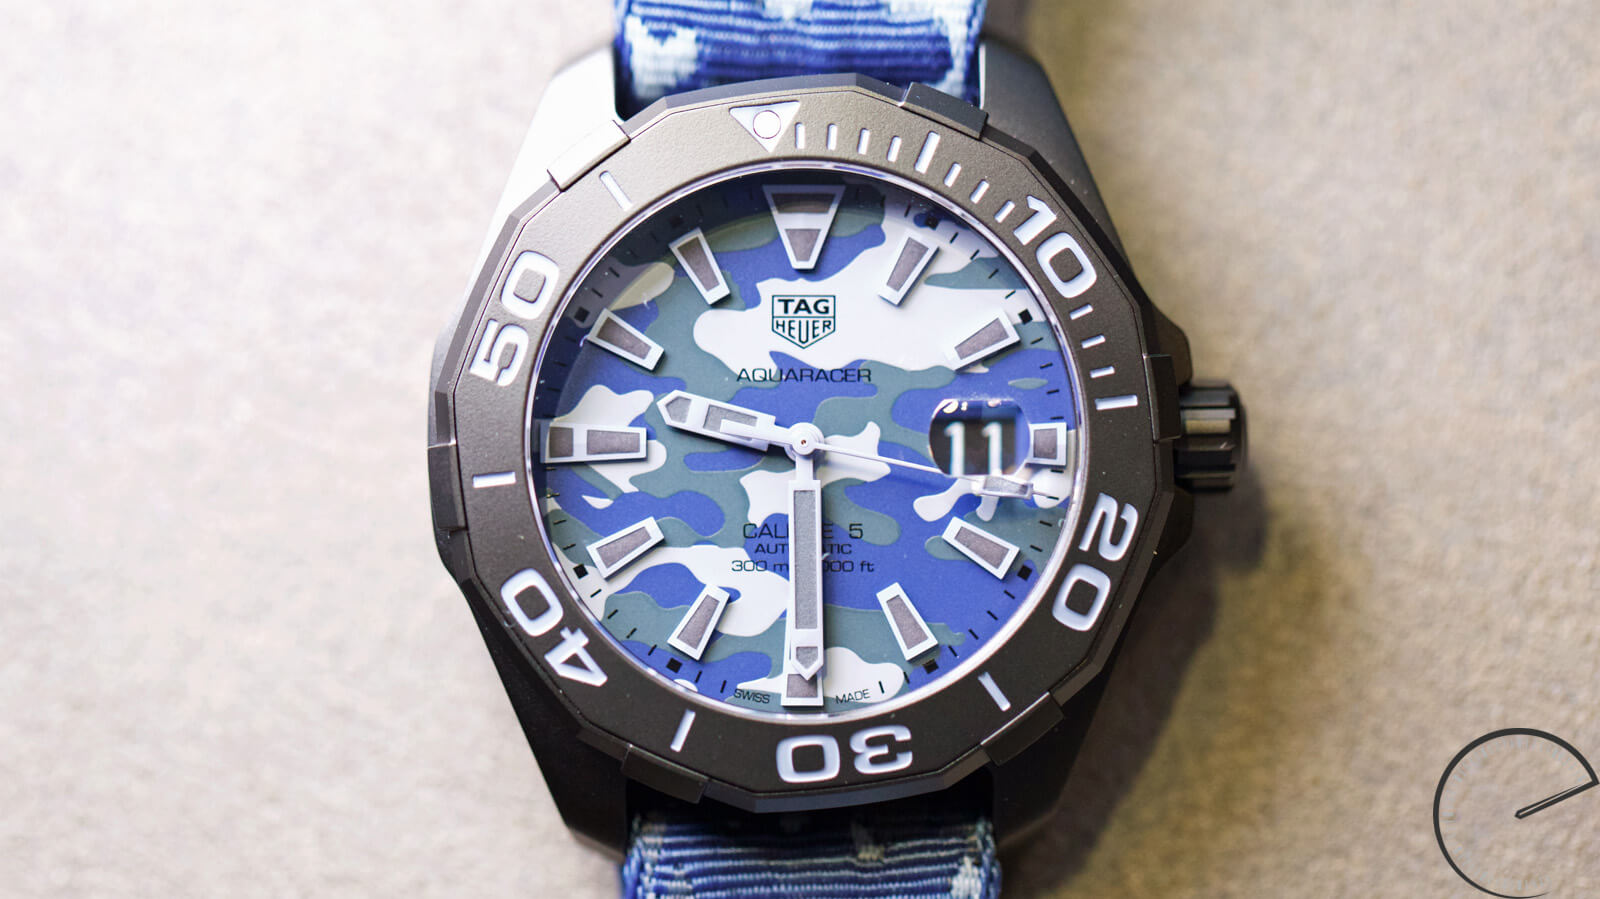 TAG Heuer Aquaracer Camouflage 300 Metres - Calibre 5